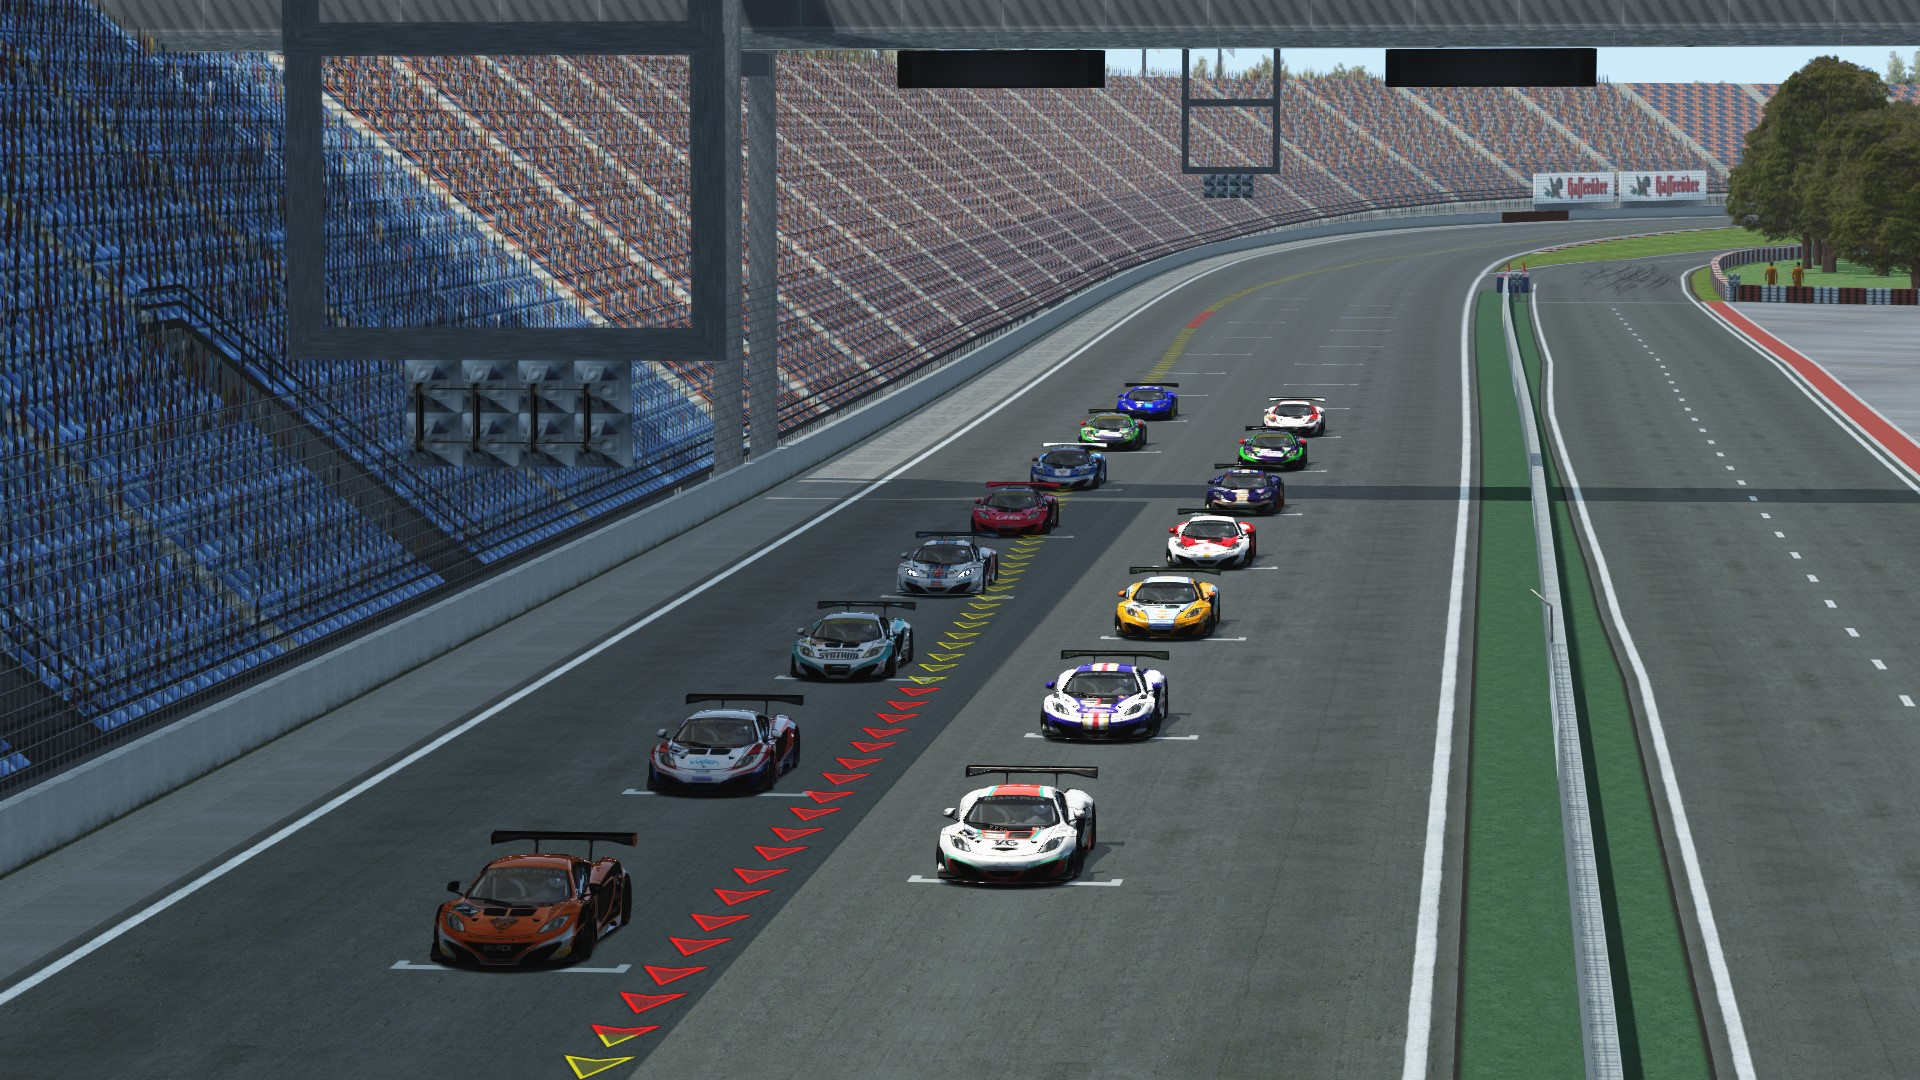 Screenshot_mclaren_mp412c_gt3_eurospeedwaygp_23-8-115-20-37-33.jpg